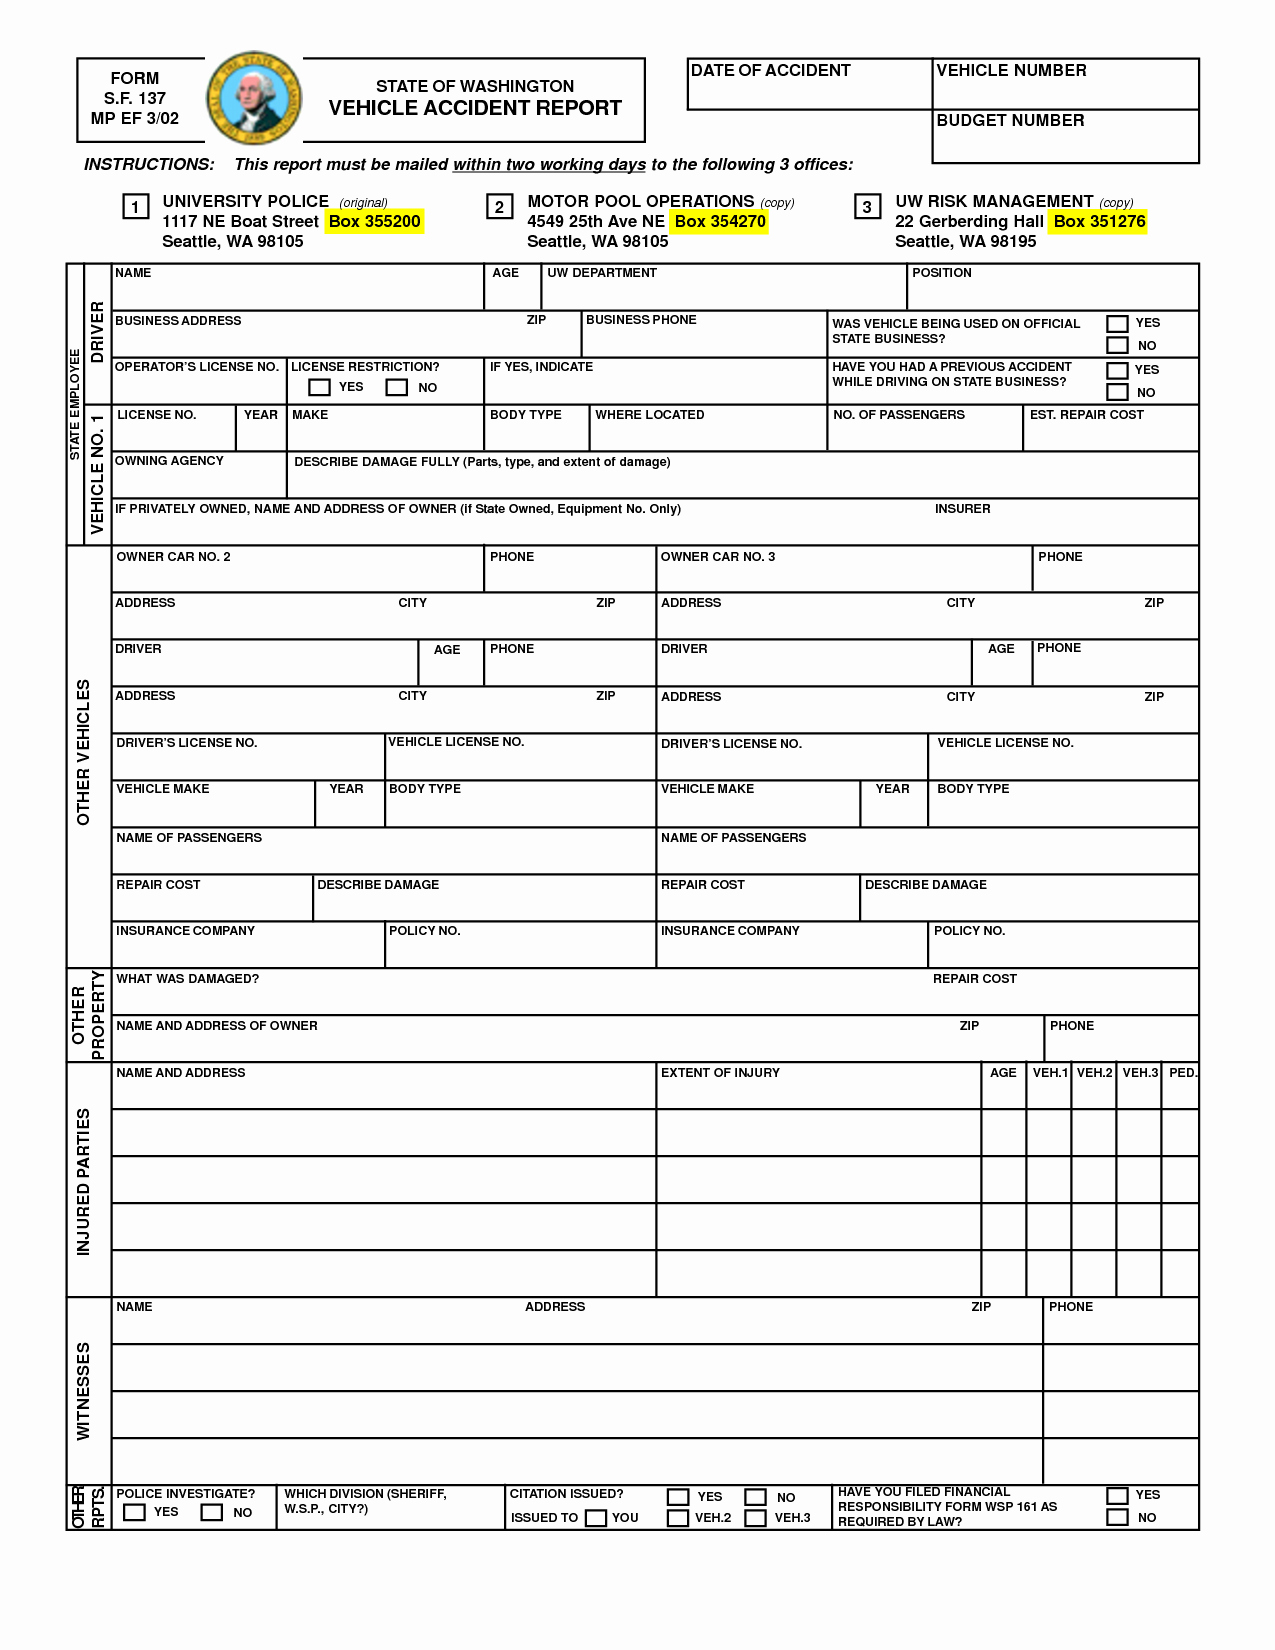 Car Accident Report form Template Lovely Best S Of Printable Accident Report forms Printable